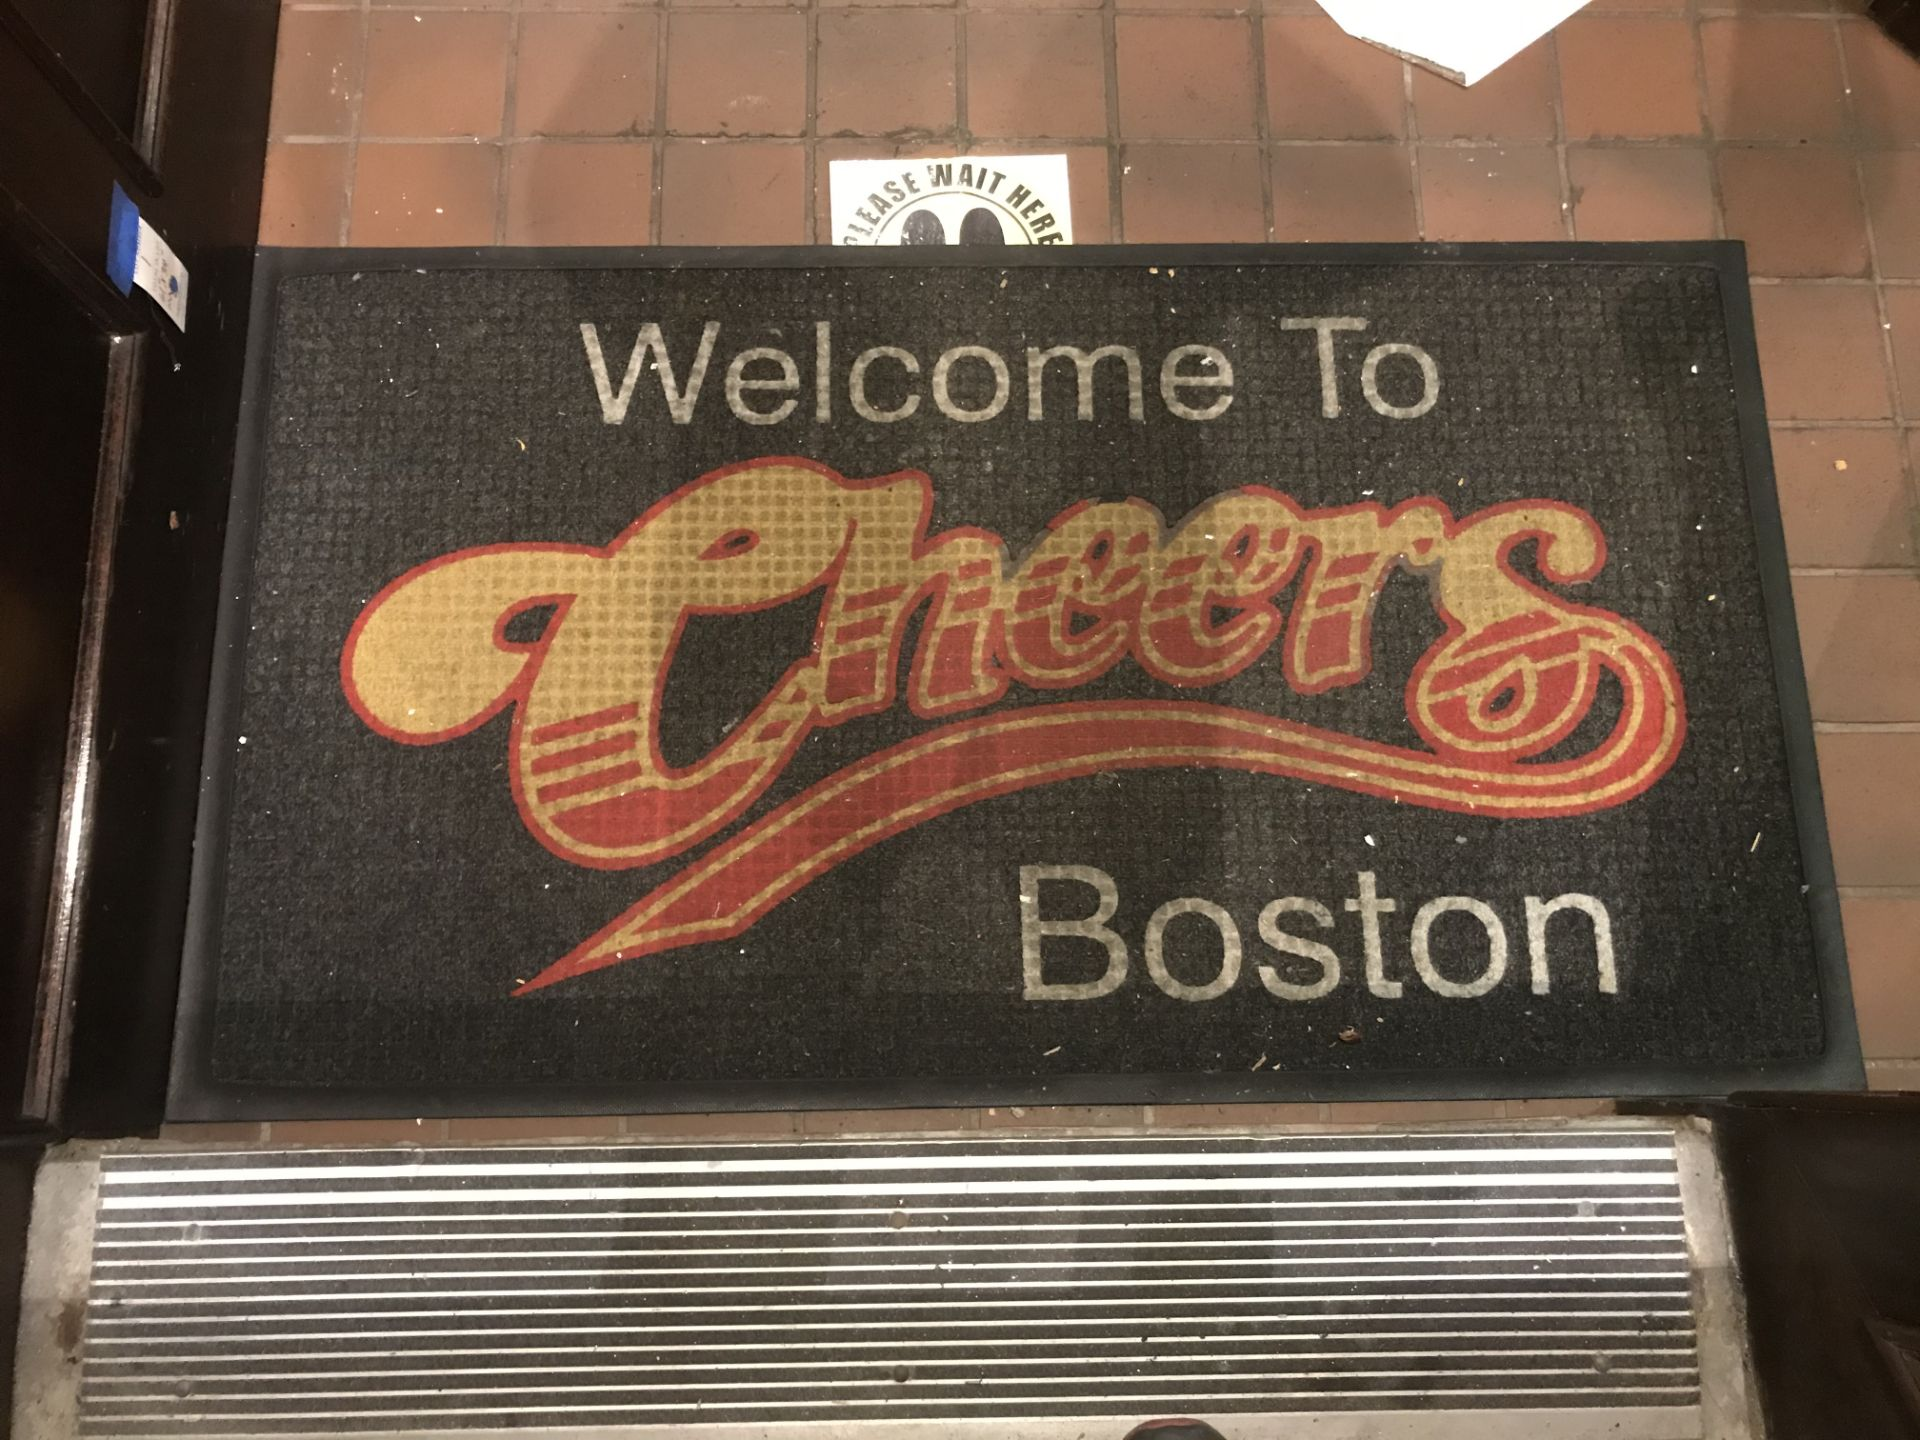 """Lot 1 - """"WELCOME TO CHEERS"""" Carpeted Rubber Floormat - 61"""" x 34"""""""